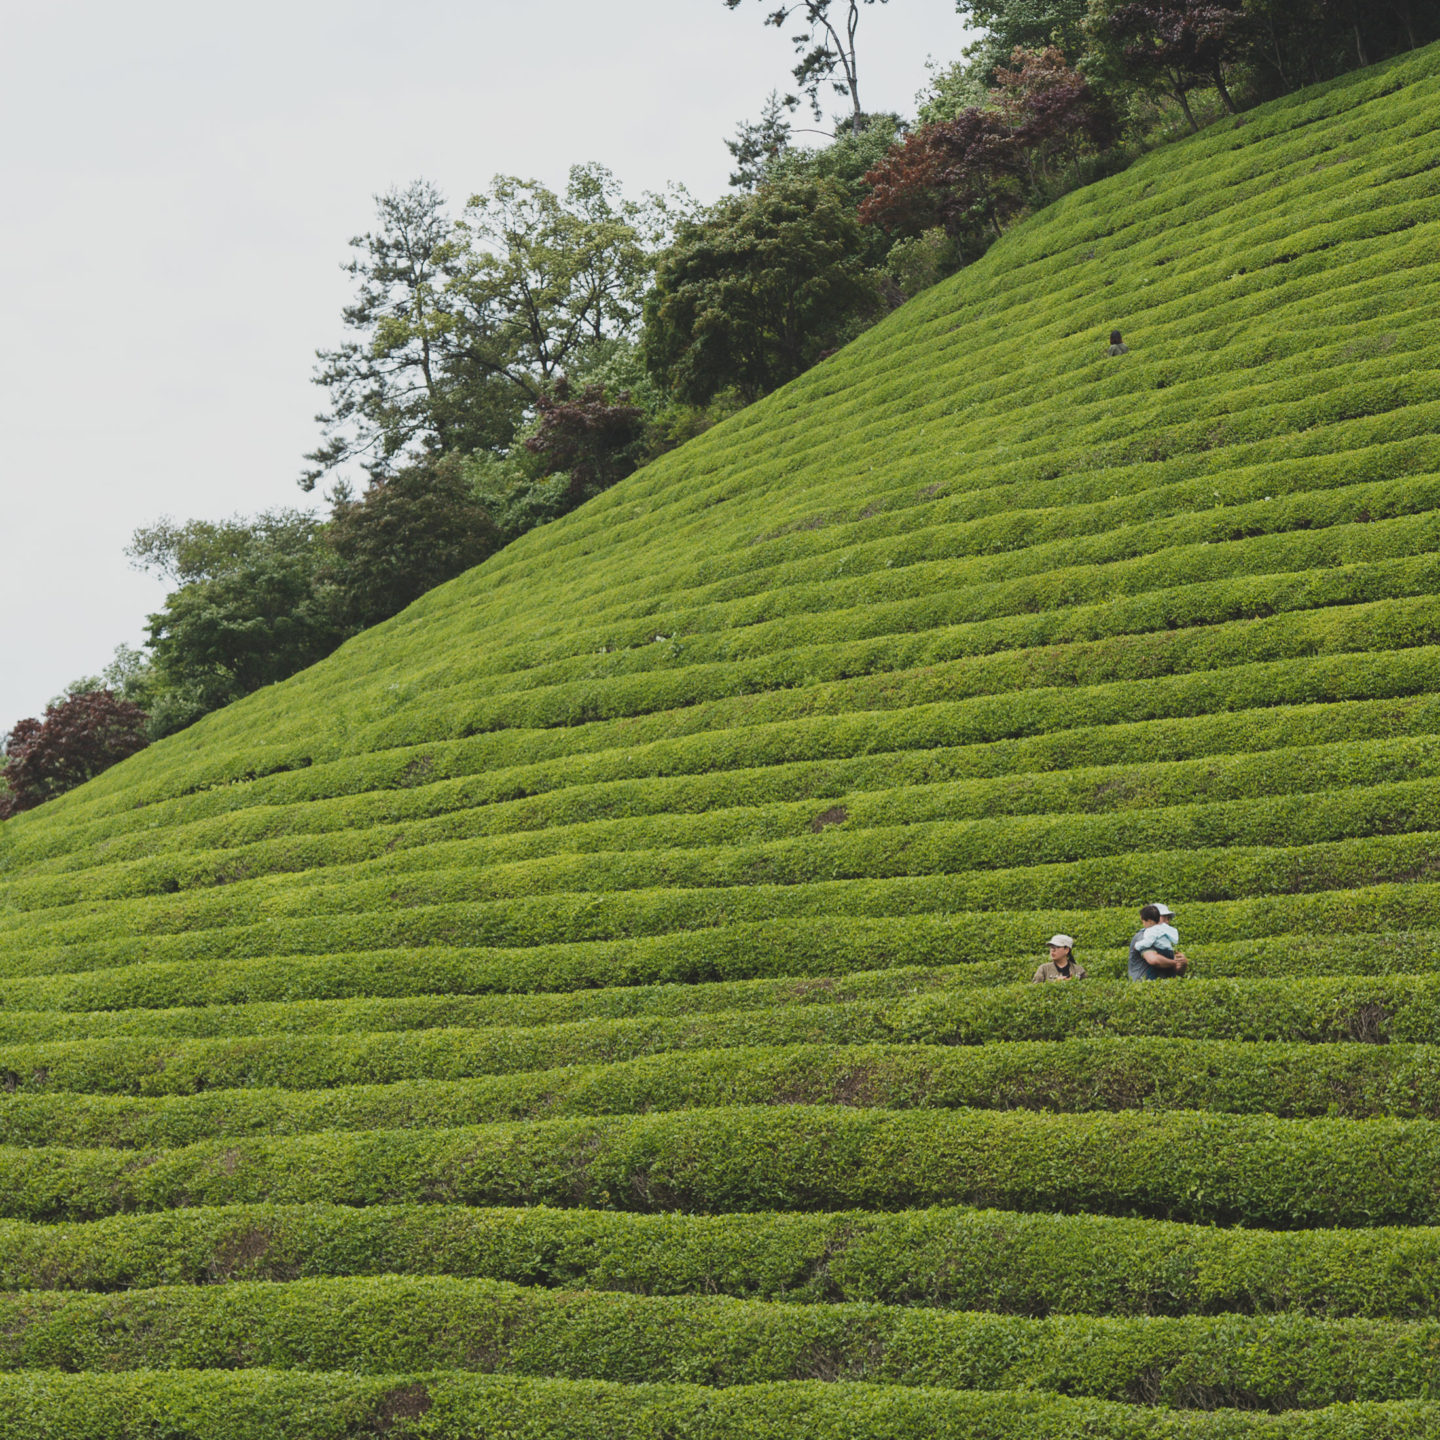 a family looking tiny in the massive rows of green tea plants